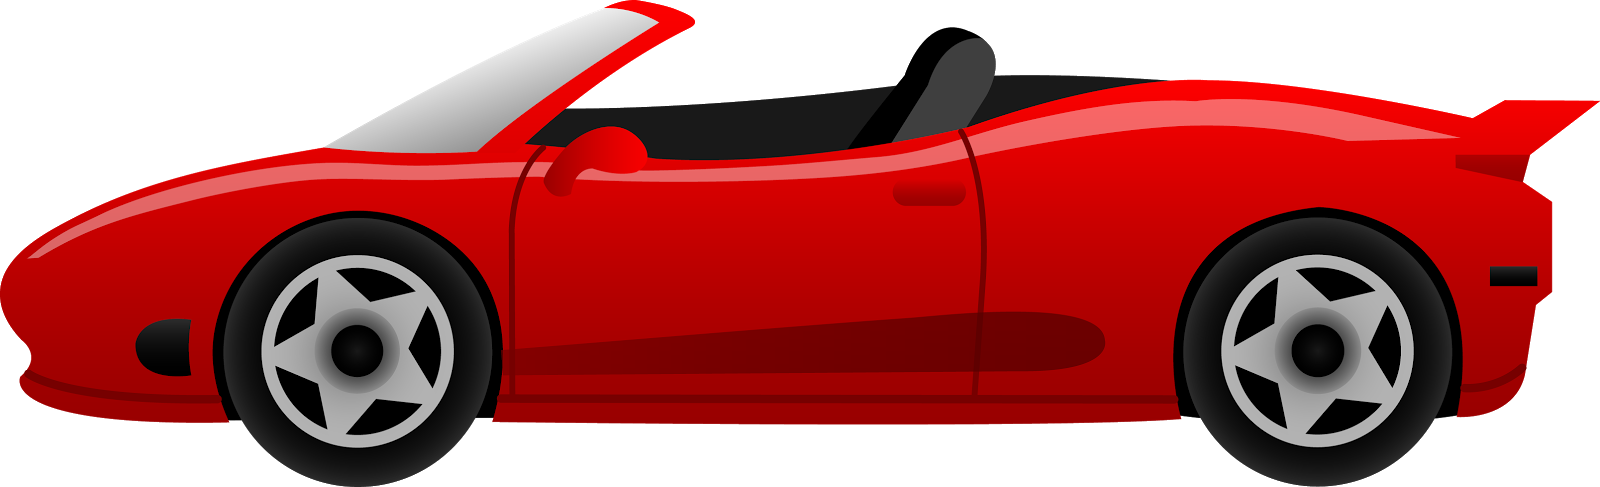 Cars Clipart No Background Clipground